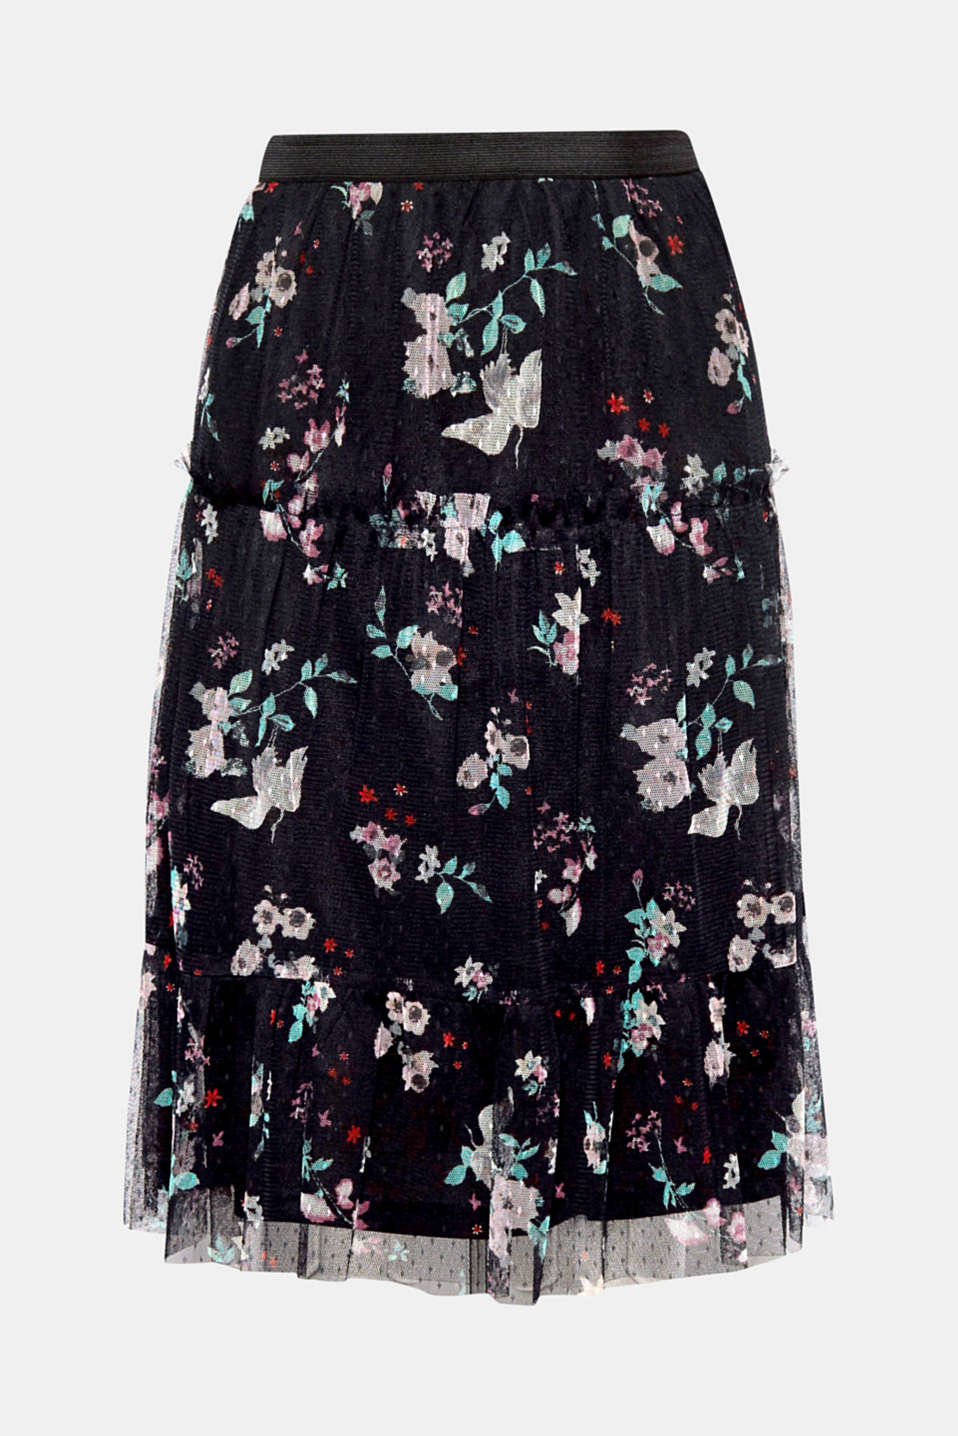 For a feminine spring look: we love this delicate tulle skirt thanks to its lightweight finish and floral all-over print!